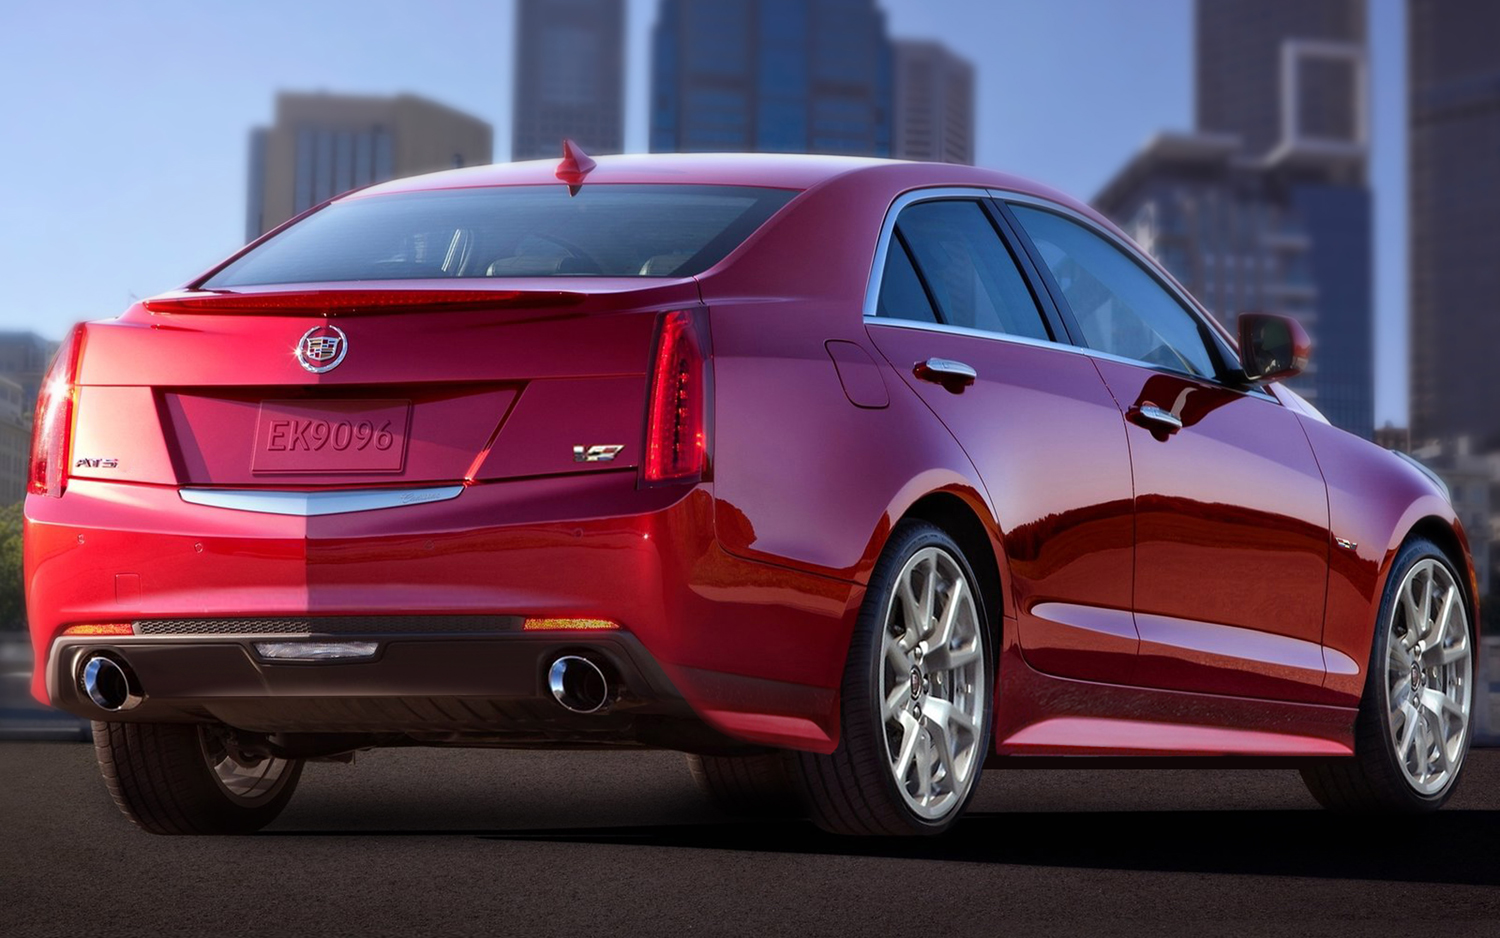 2015 Cadillac ATS-V Rear Side Exterior